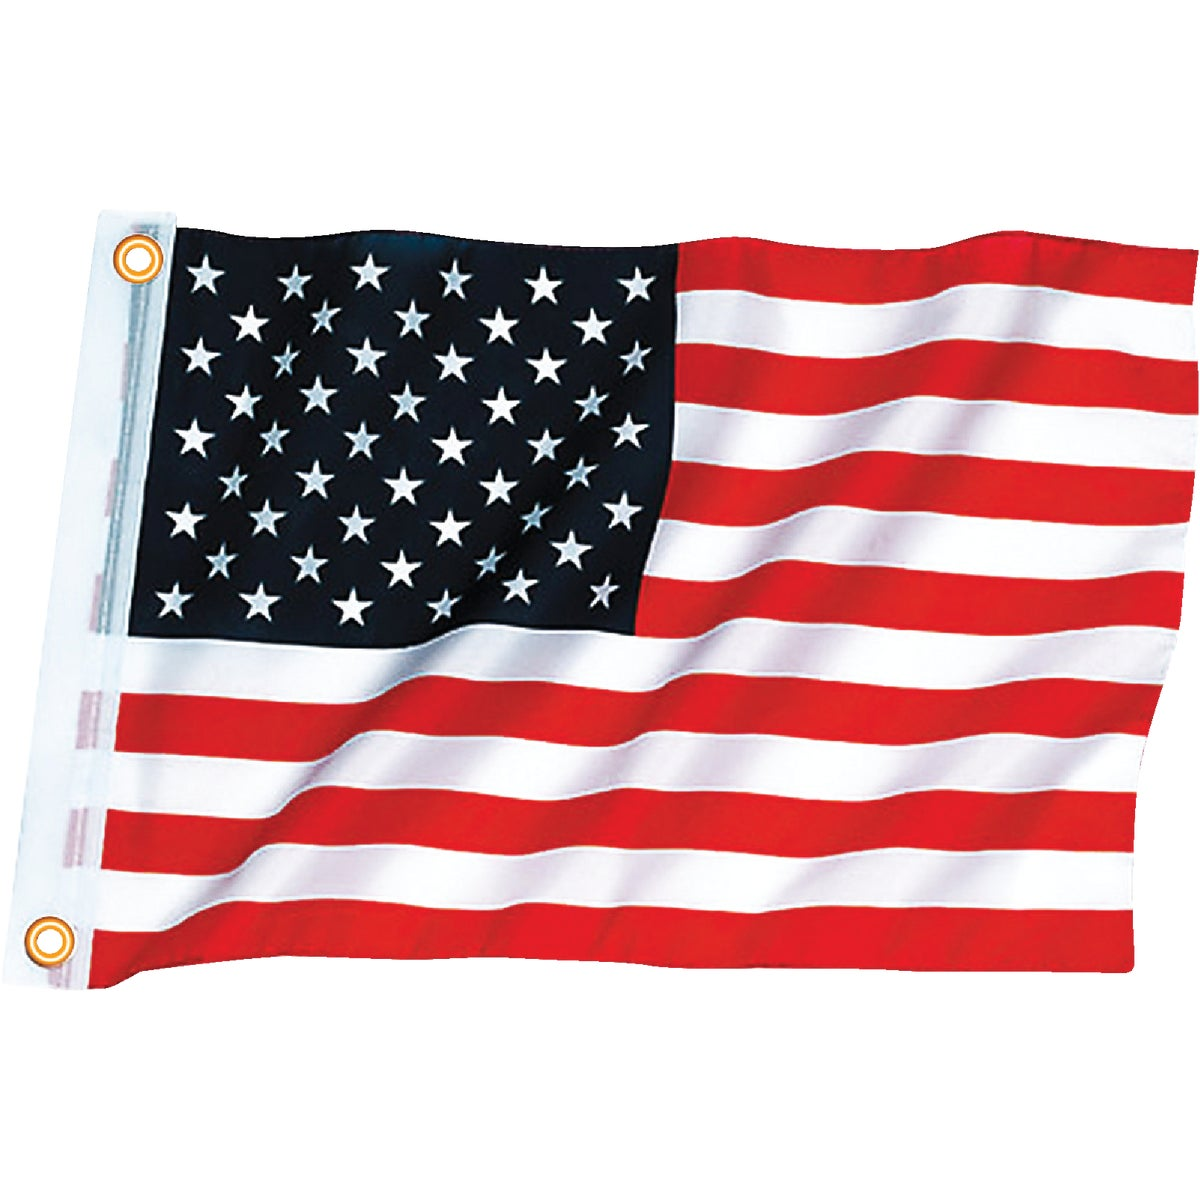 12X18 U S A FLAG - 78201 by Seachoice Prod